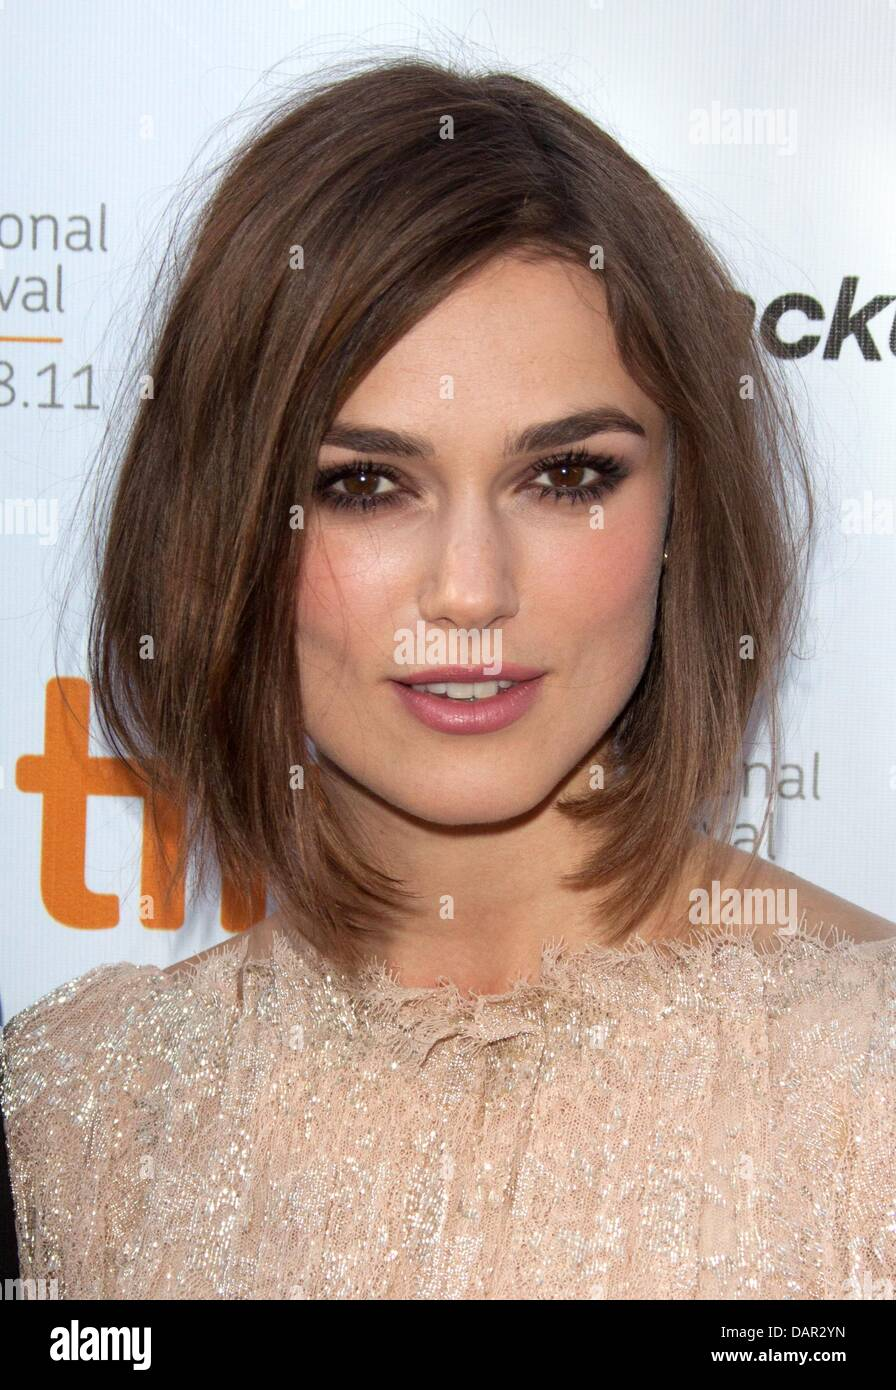 British actress Keira Knightley attends the premiere of 'A Dangerous Method' at the Toronto International - Stock Image